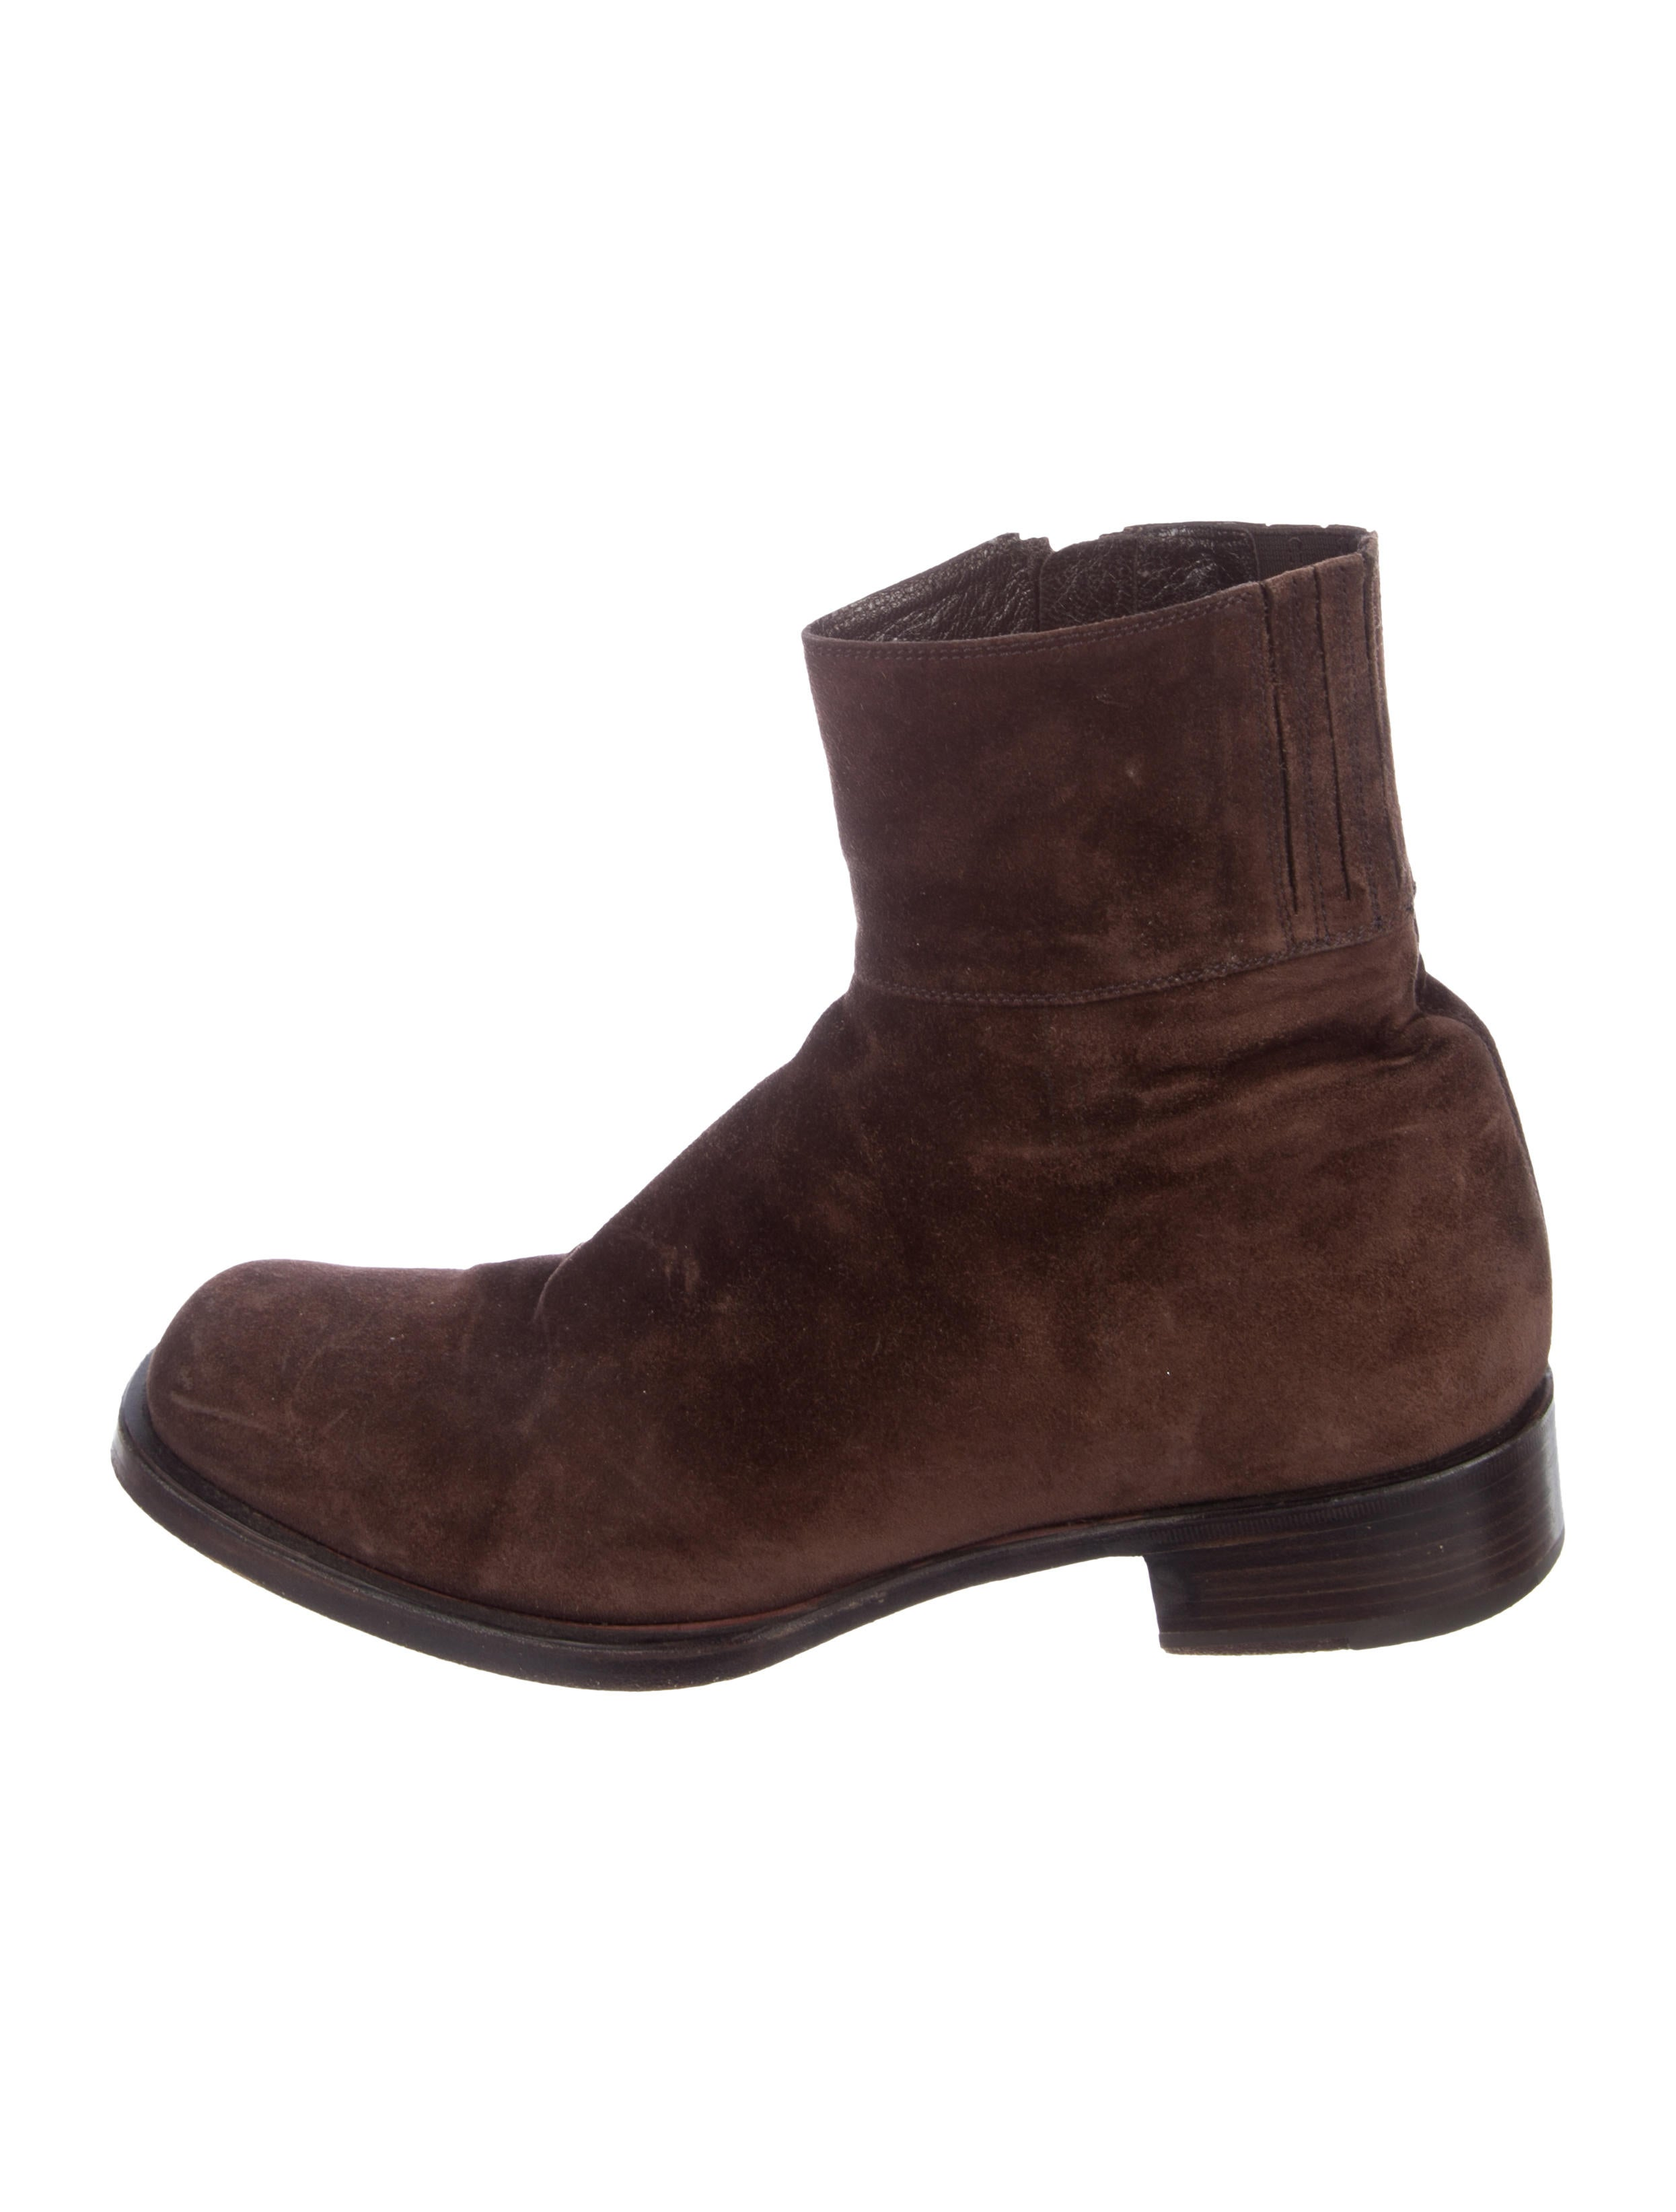 501cadfa103 ... coupon code yves saint laurent suede ankle boots. suede ankle boots  aba36 a7211